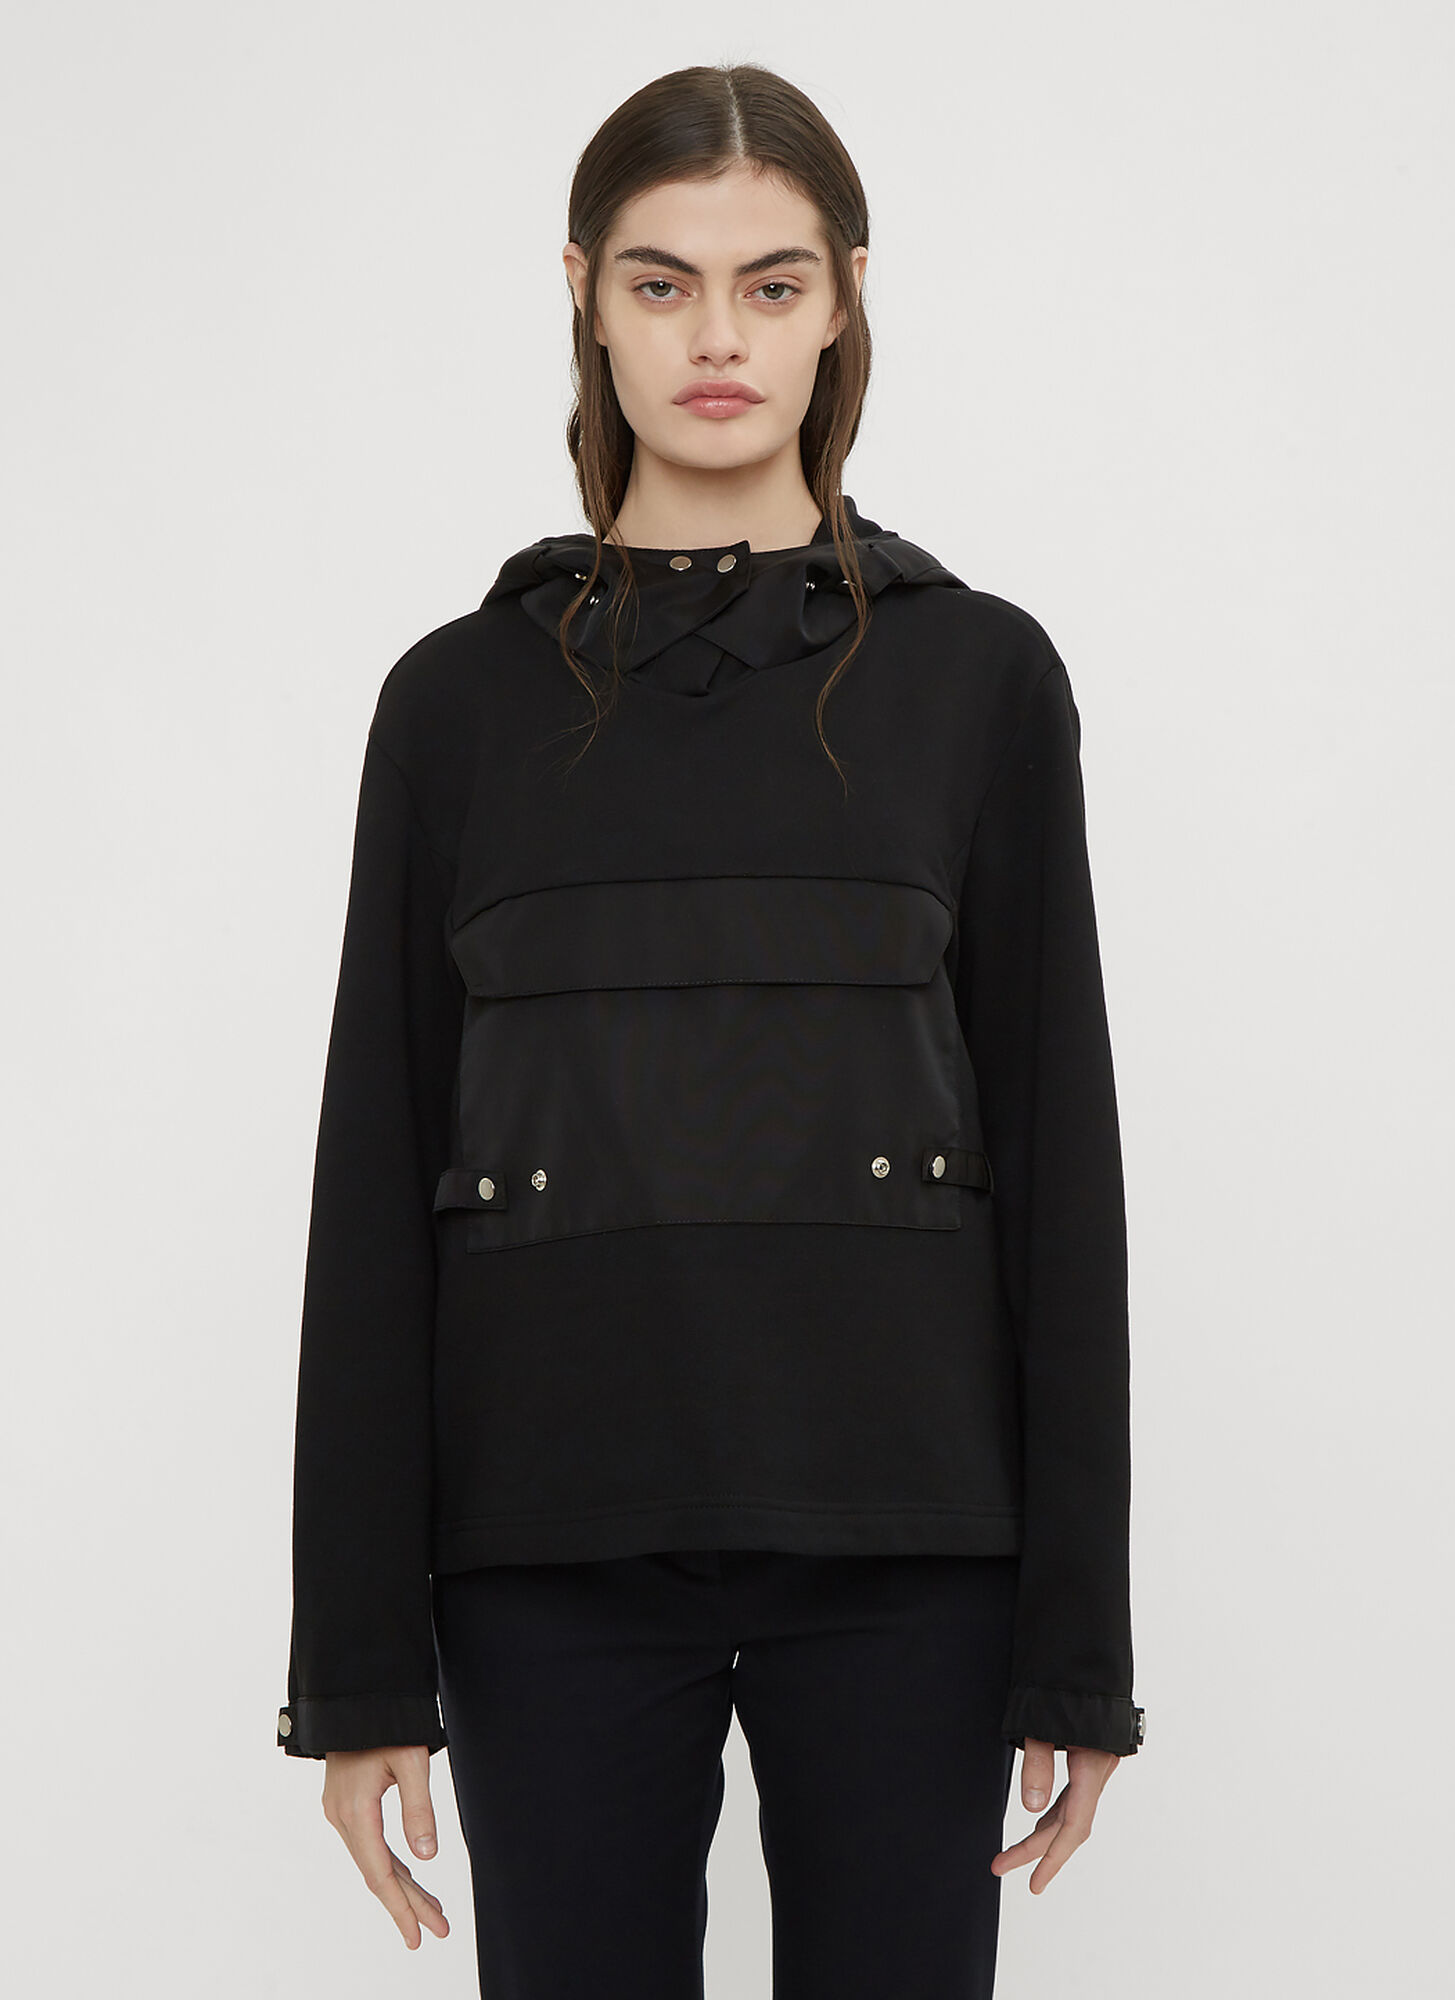 1017 ALYX 9SM Hooded Cargo Sweater in Black size S